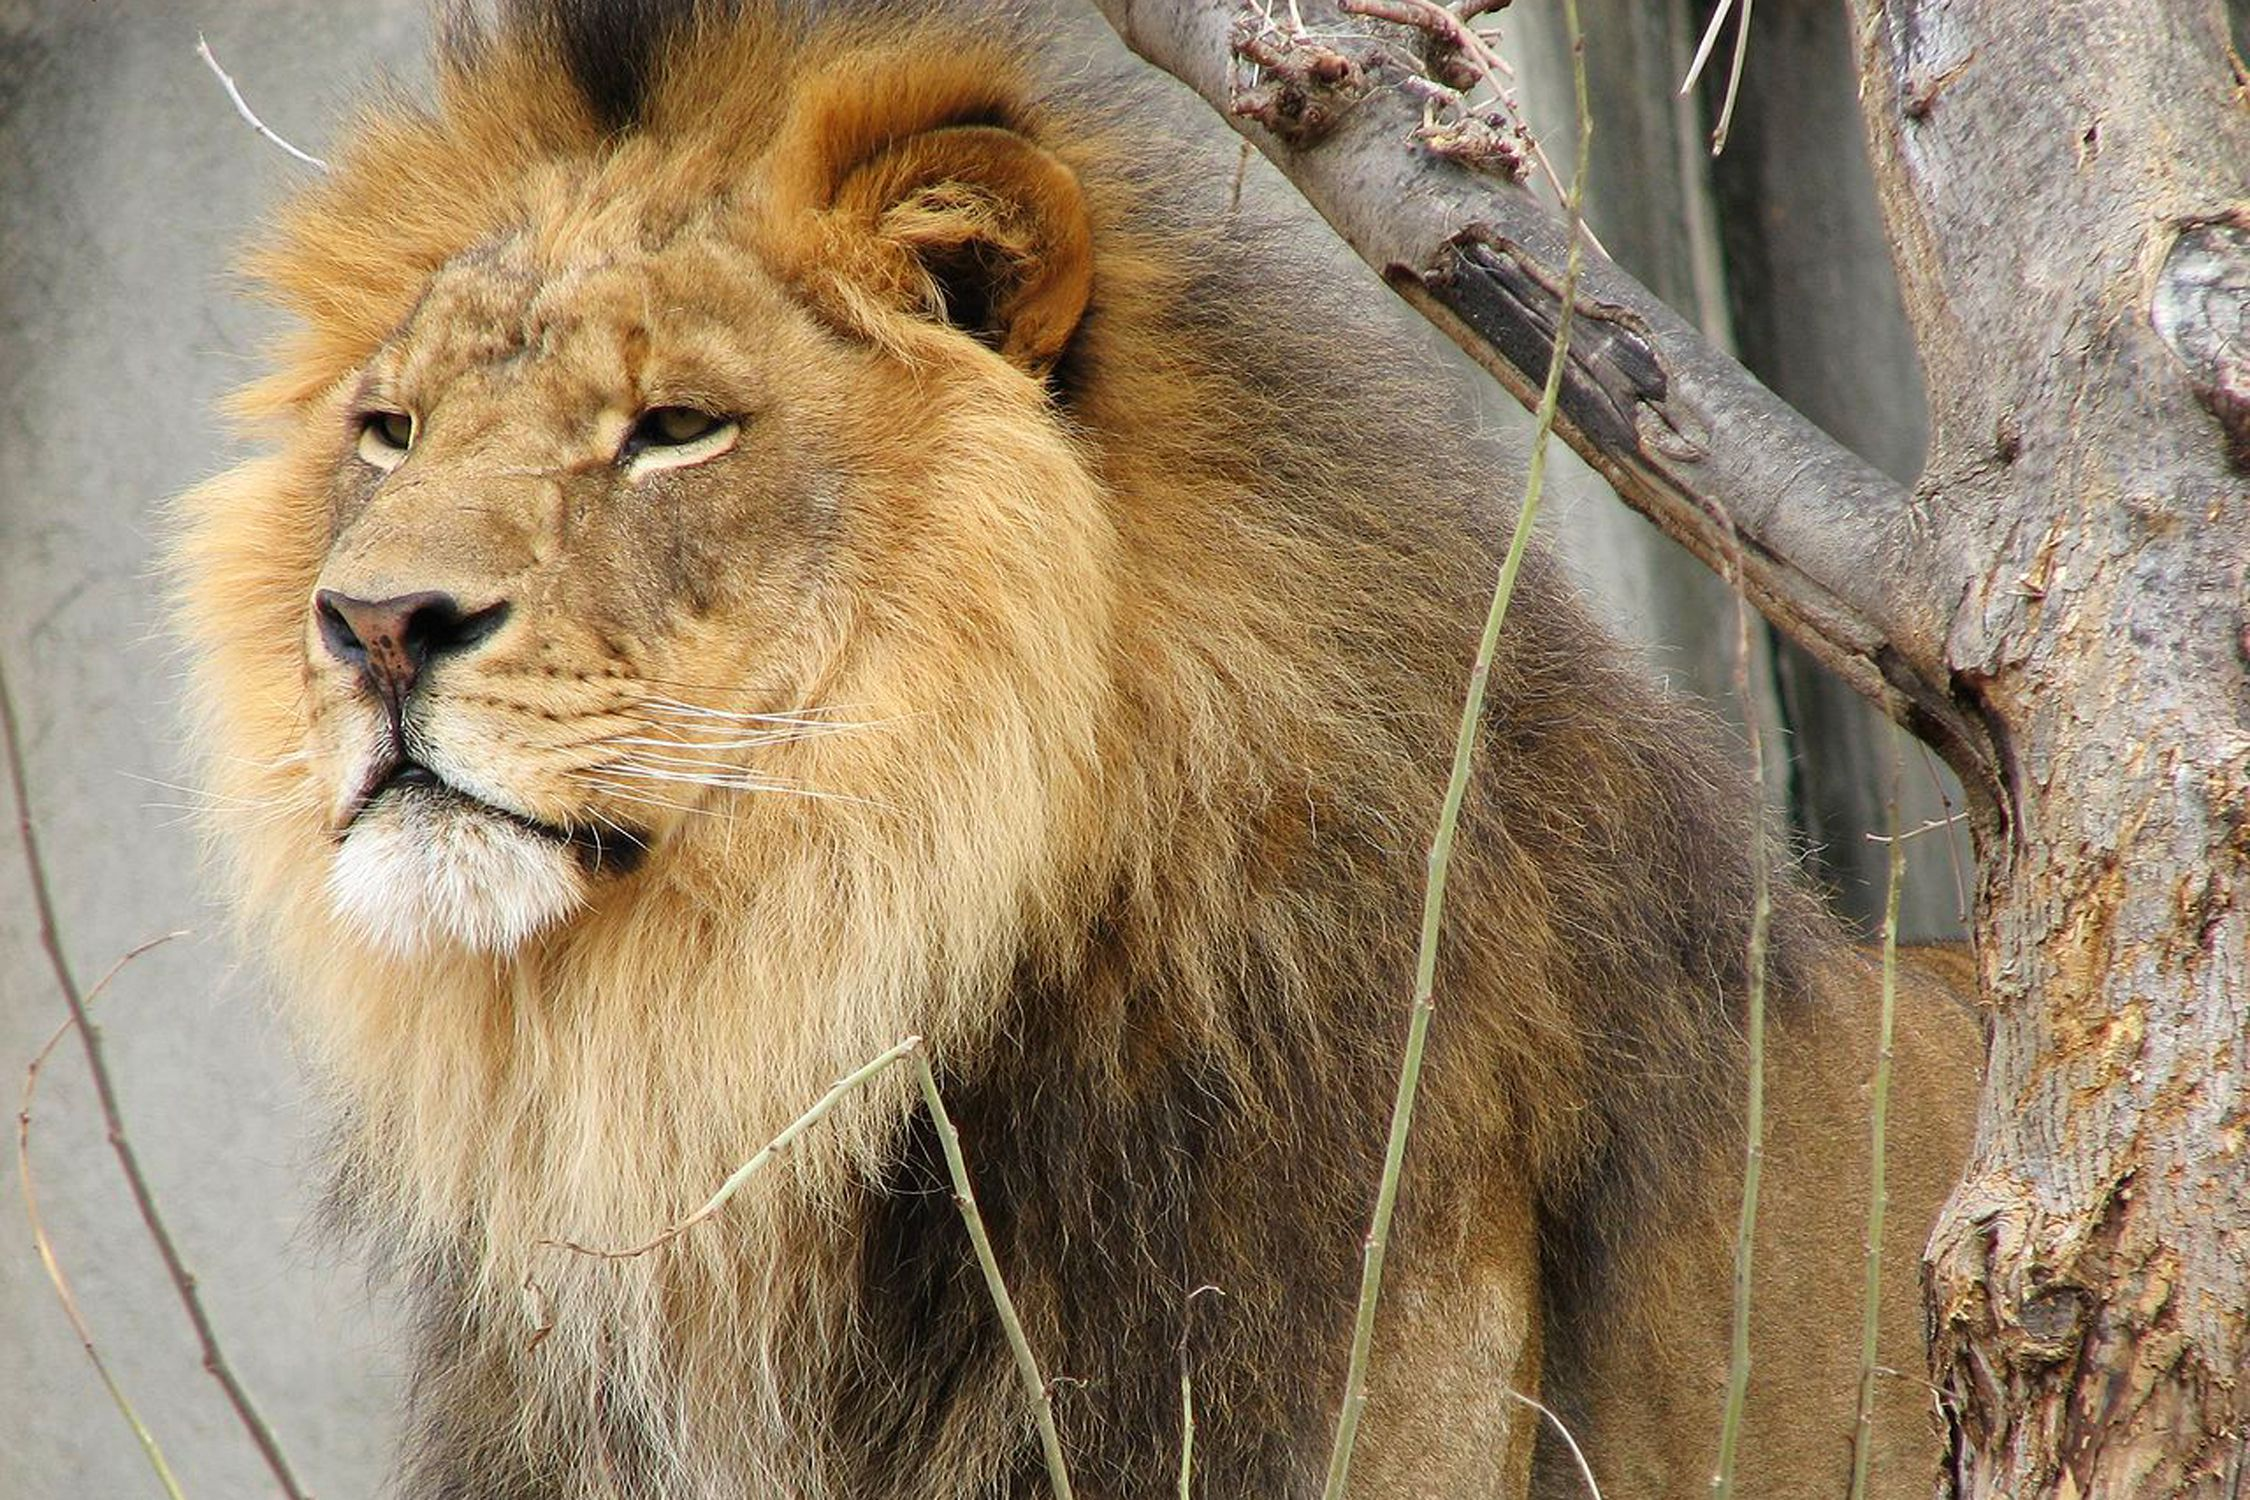 Lion with full mane looking into the distance.